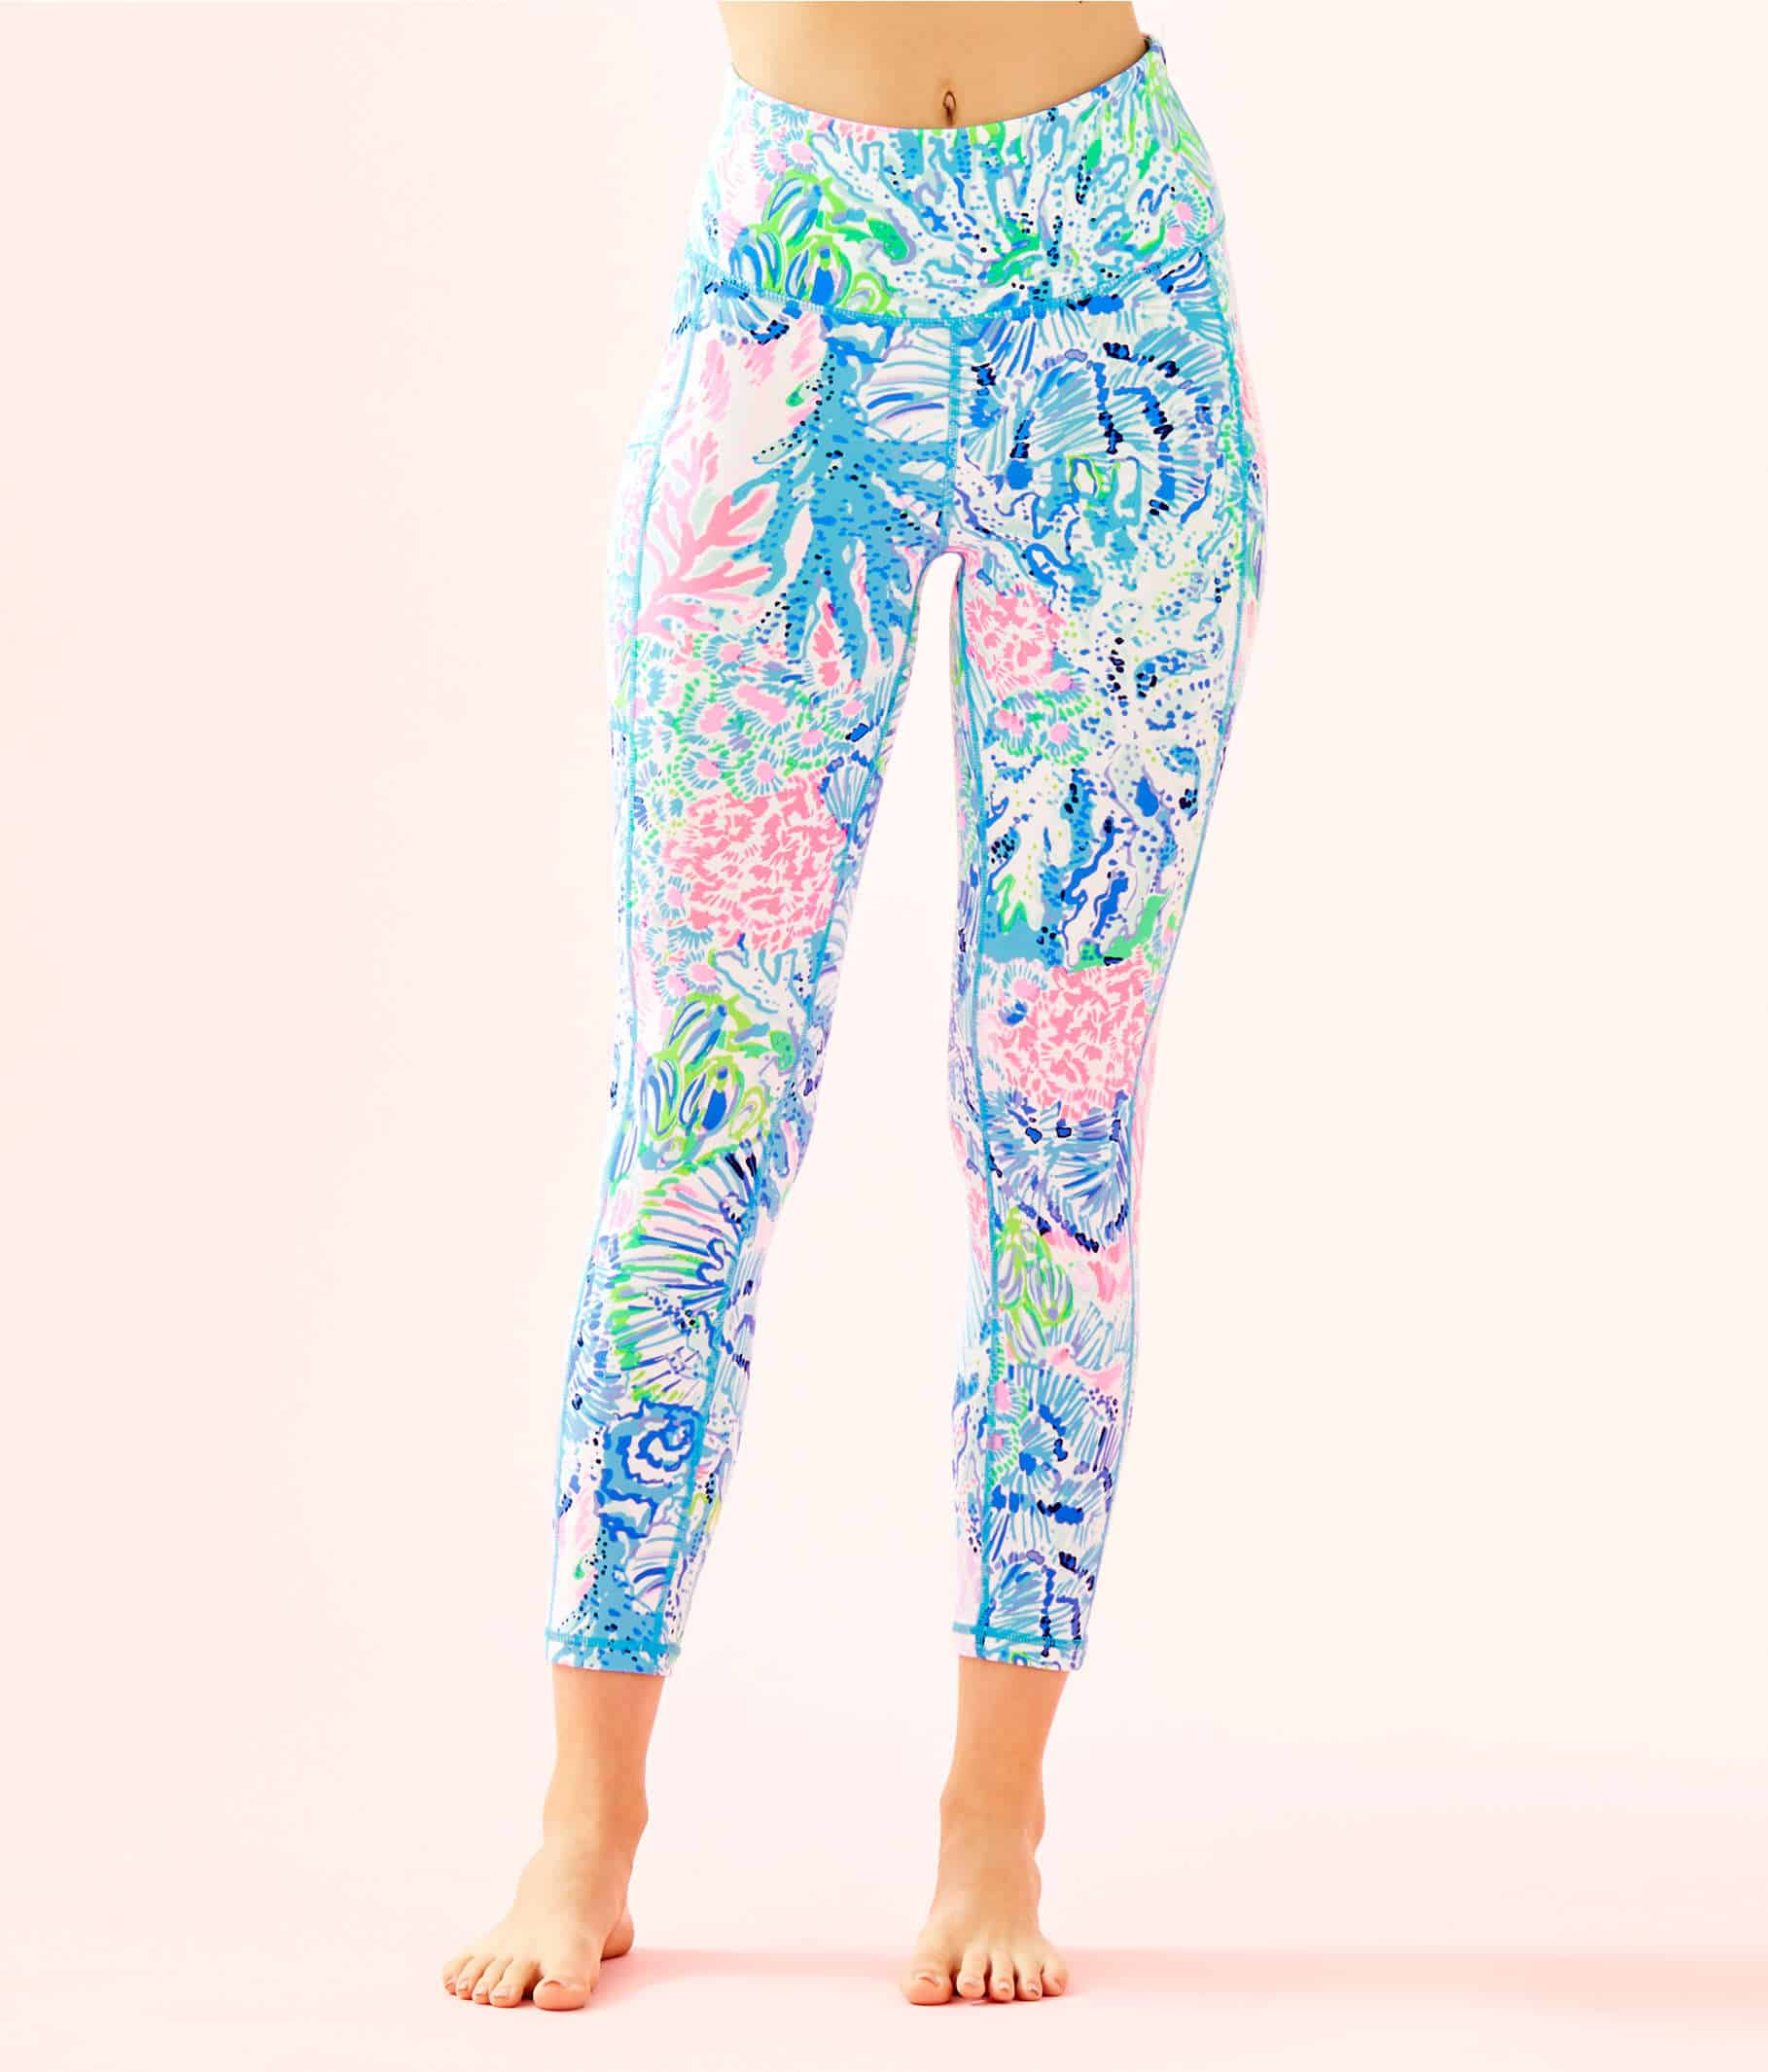 Lilly Pulitzer After Party Sale favorites featured by top US fashion blog, Glamorous Versatility: image of high rise weekender leggings